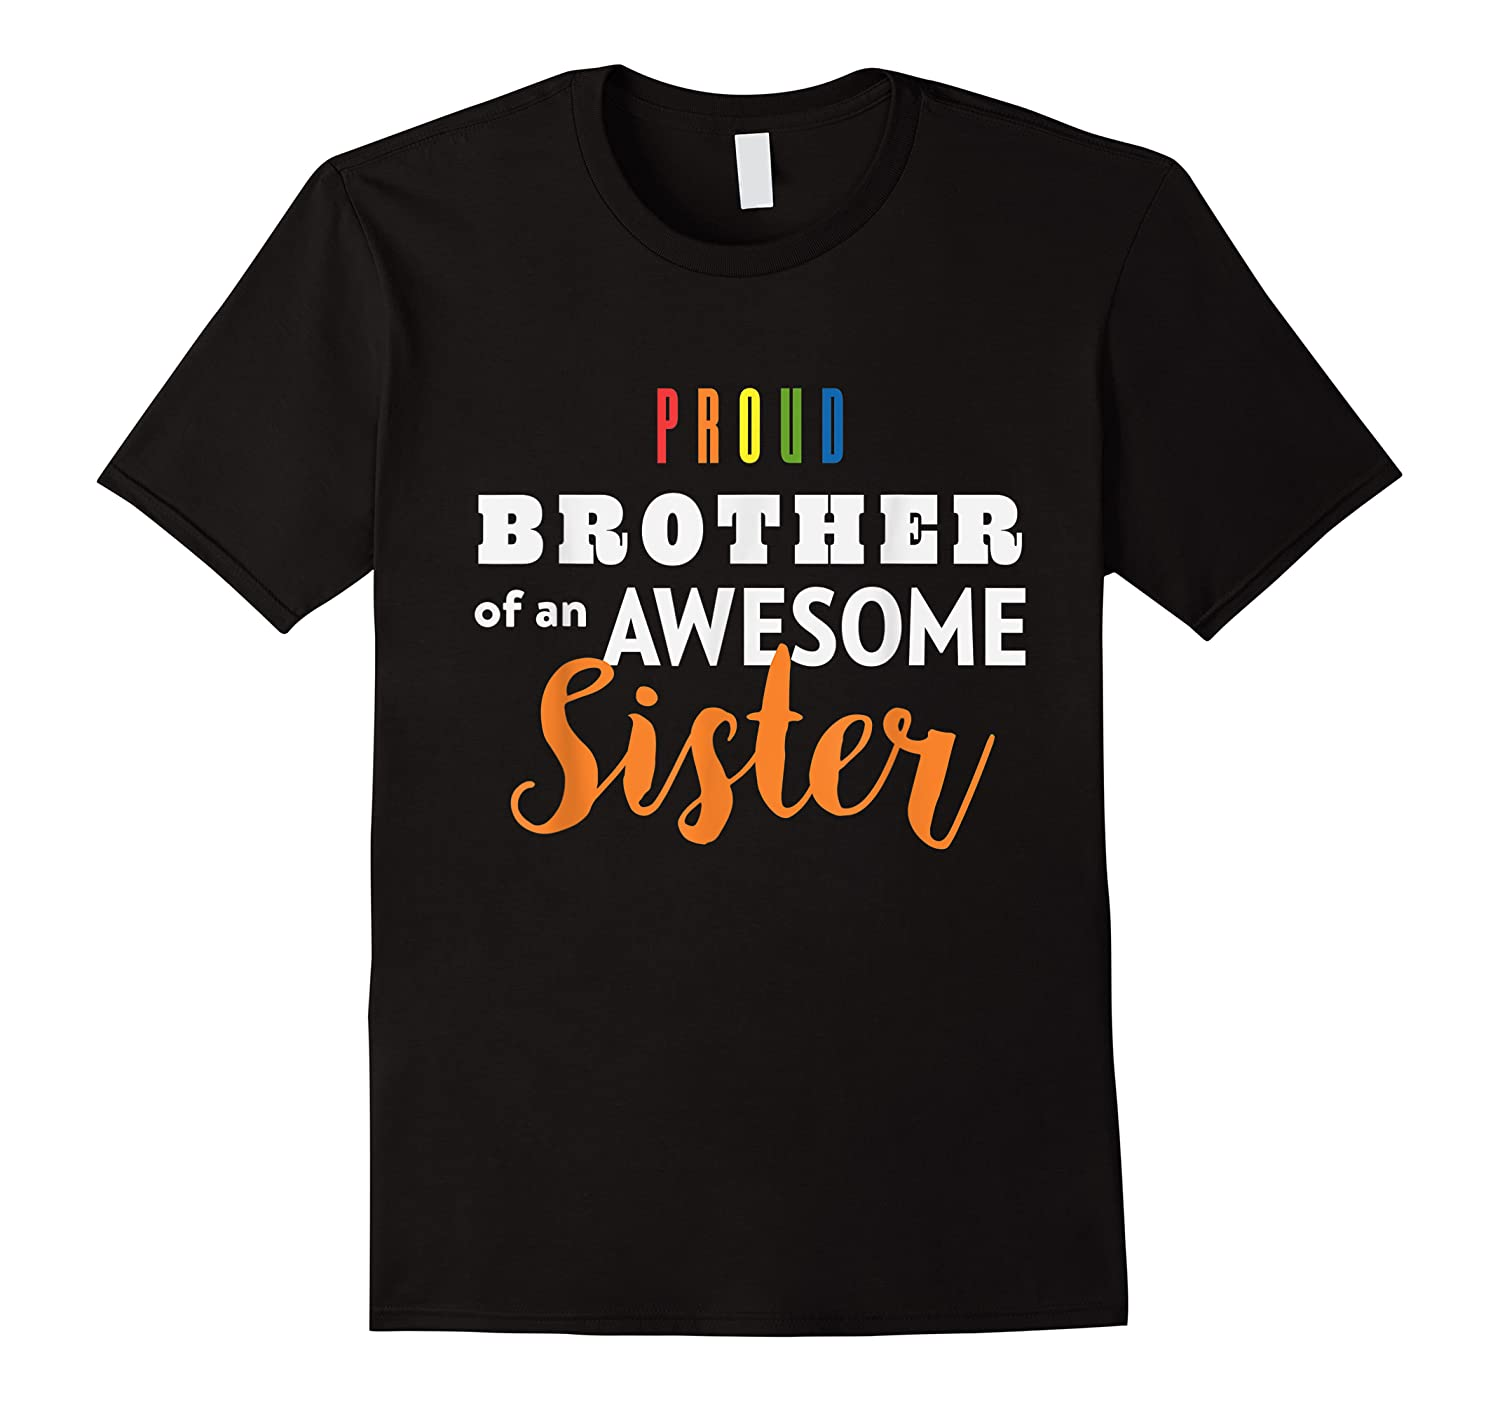 Proud Brother, Gay Pride Lgbt Shirts